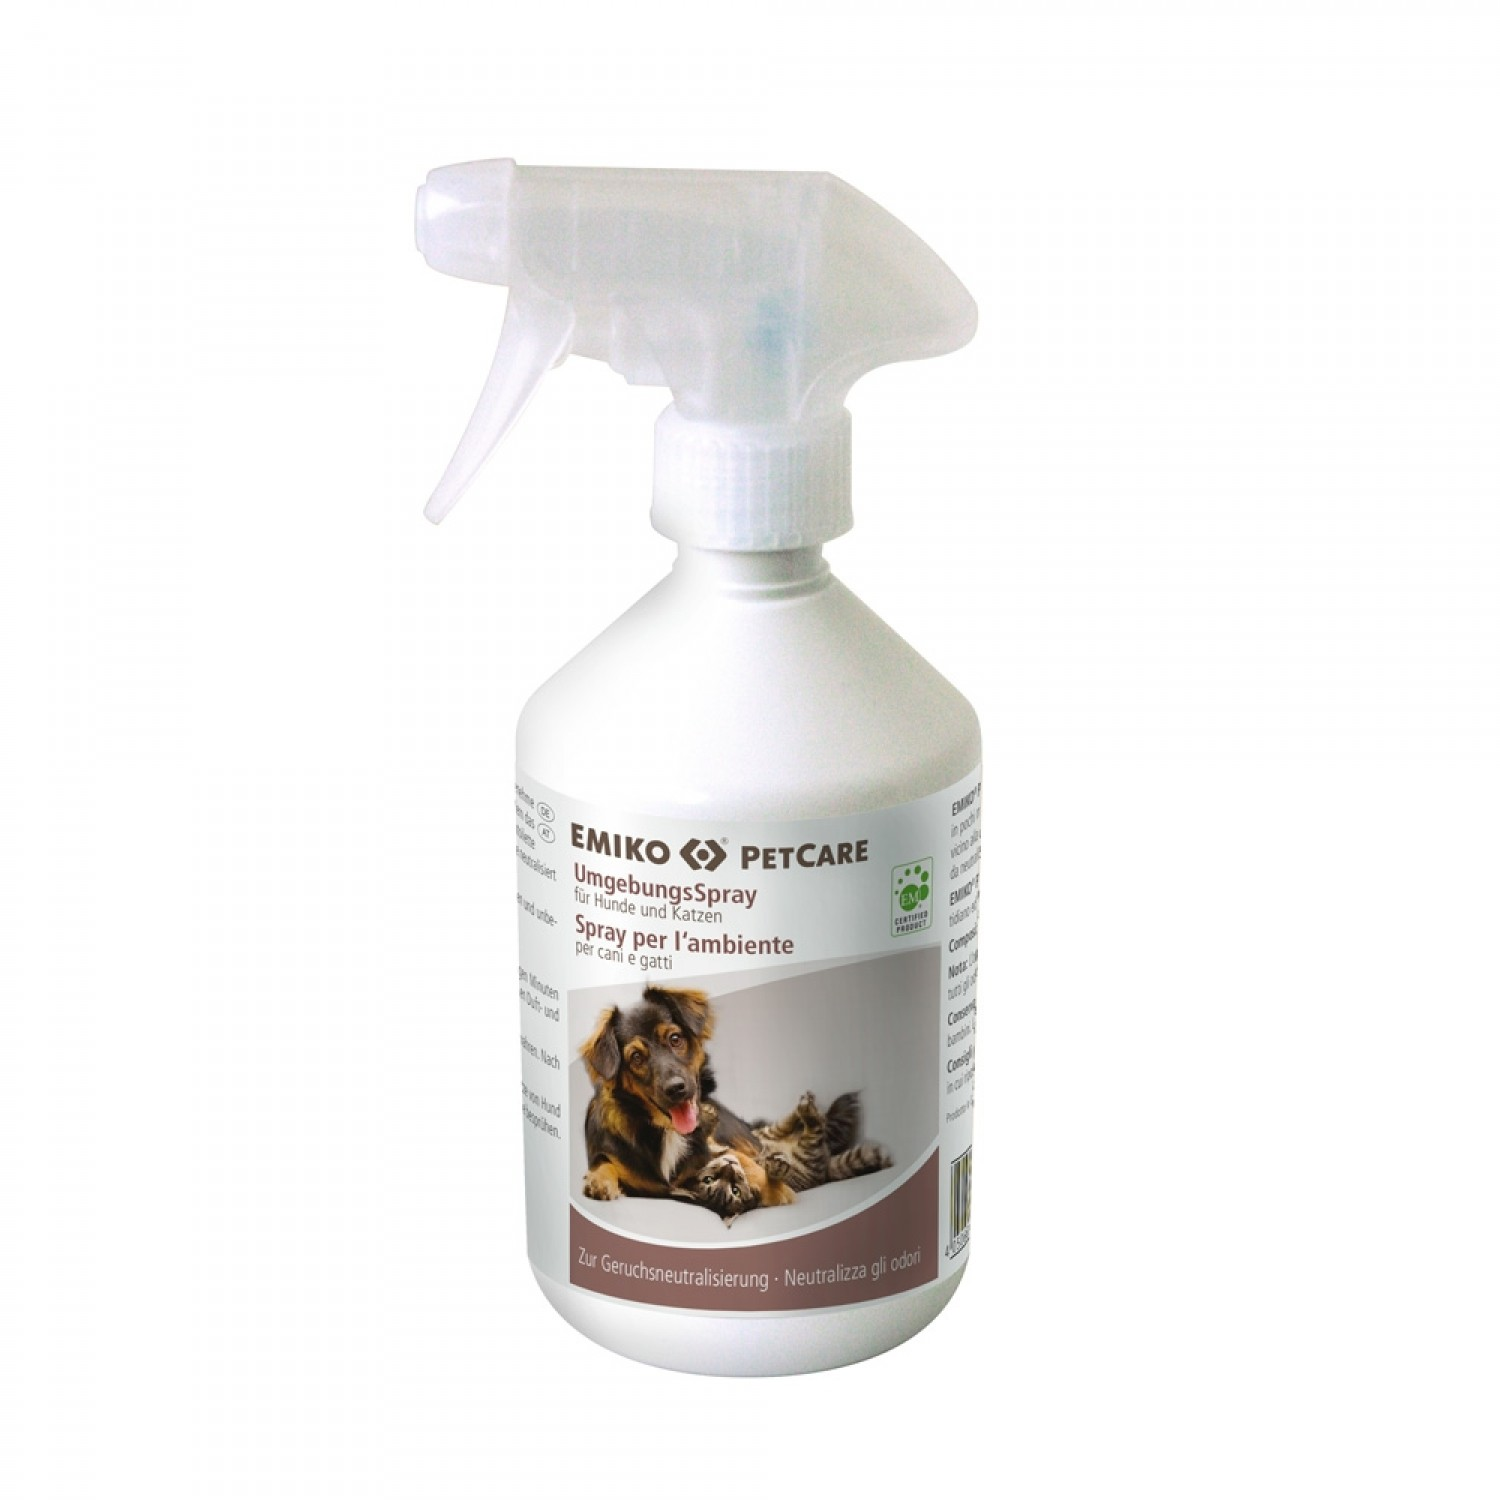 Emiko PetCare Environment Spray for Dogs & Cats, 500ml